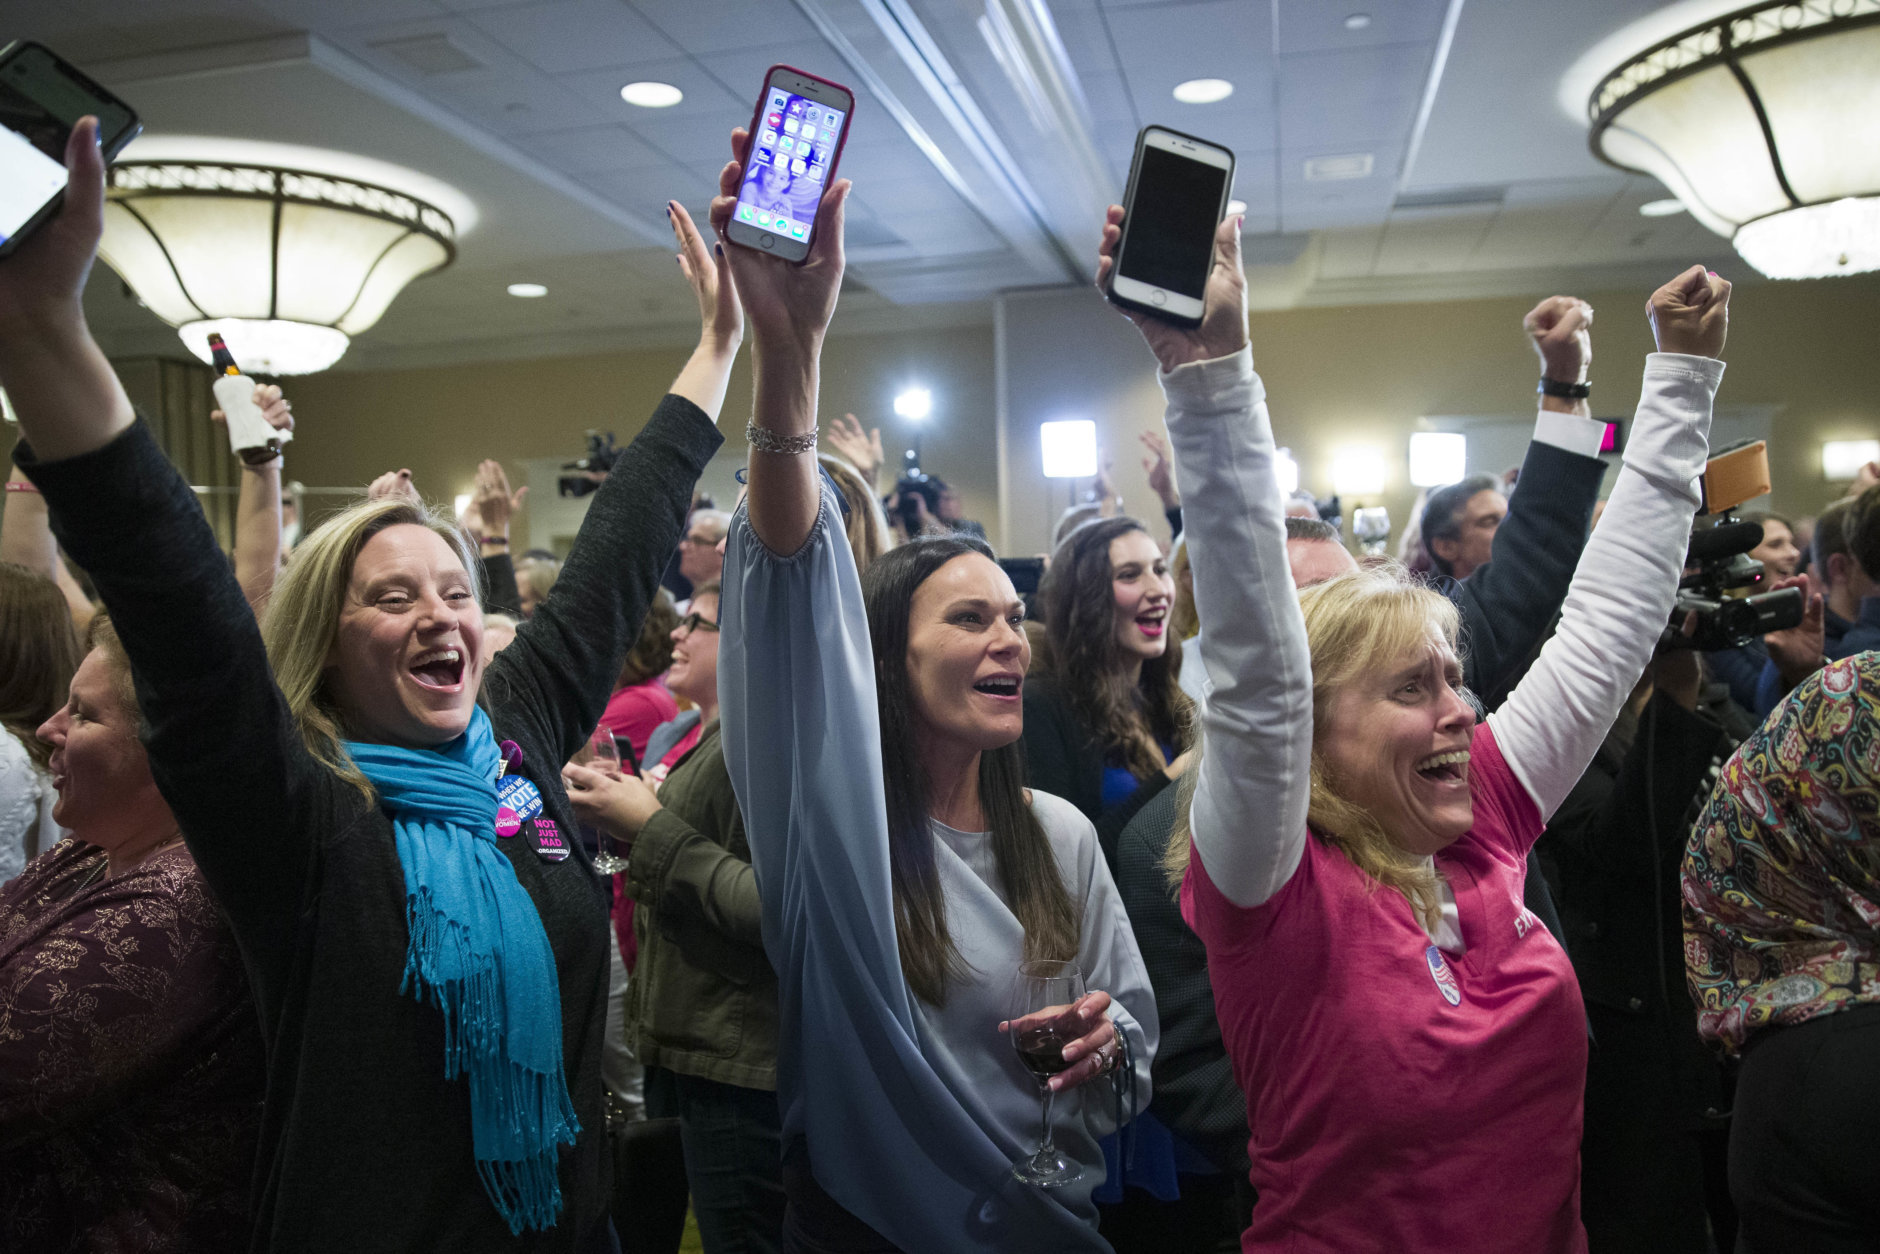 Supporters cheer as they watch returns at an election night party for Democrat congressional candidate Jennifer Wexton on Tuesday, Nov. 6, 2018, in Dulles, Va. (AP Photo/Alex Brandon)